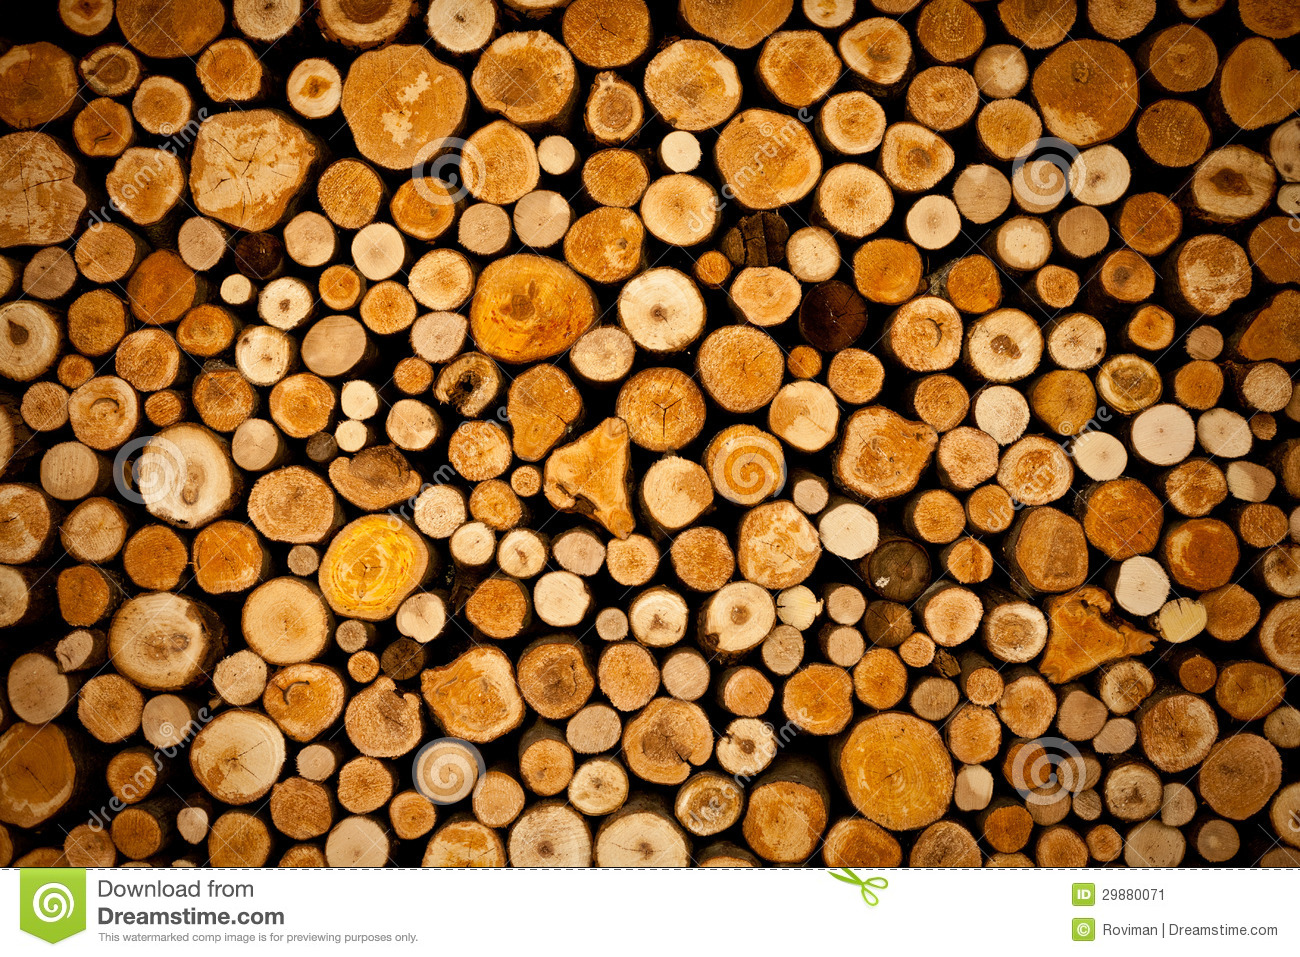 Photo about Plenty of wood prepared for the winter in pile. Image of material